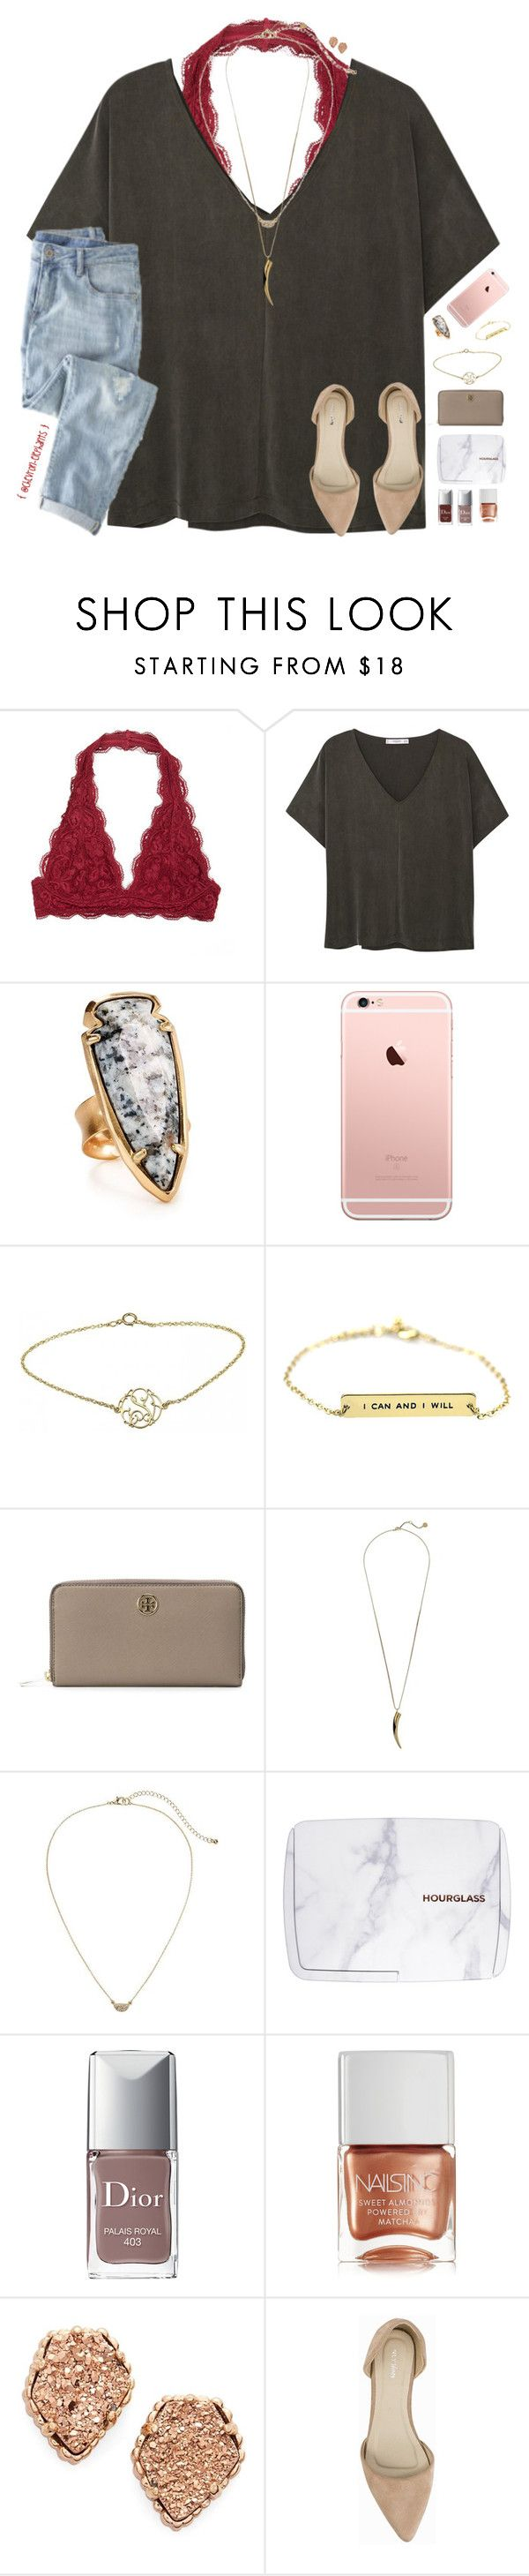 """At the  dealership"" by chevron-elephants ❤ liked on Polyvore featuring MANGO, Kendra Scott, Alison & Ivy, Tory Burch, Vince Camuto, Gap, Christian Dior, Nails Inc., Nly Shoes and Wrap"